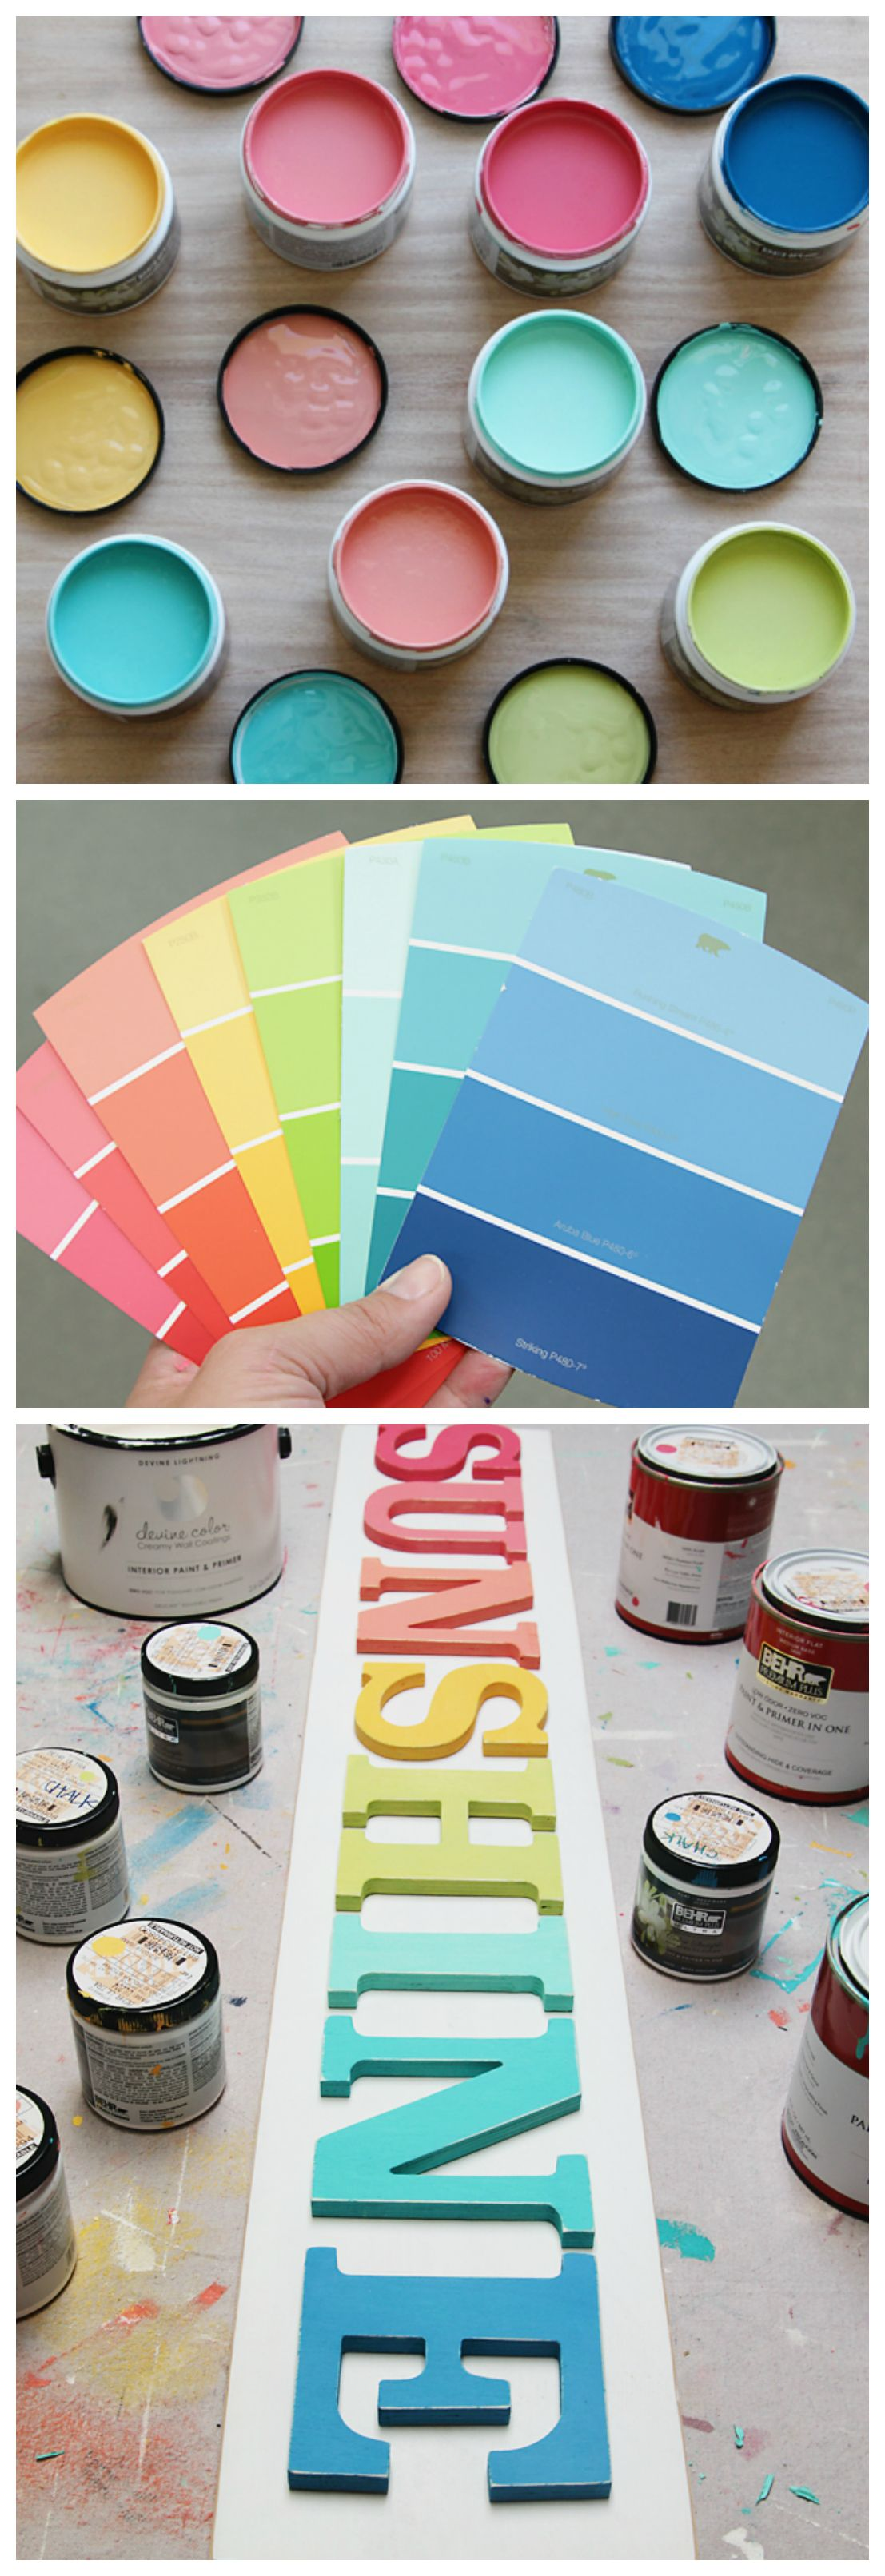 Best Paint Color For Playroom The Perfect Paint Colors Playroom Pinterest Paint